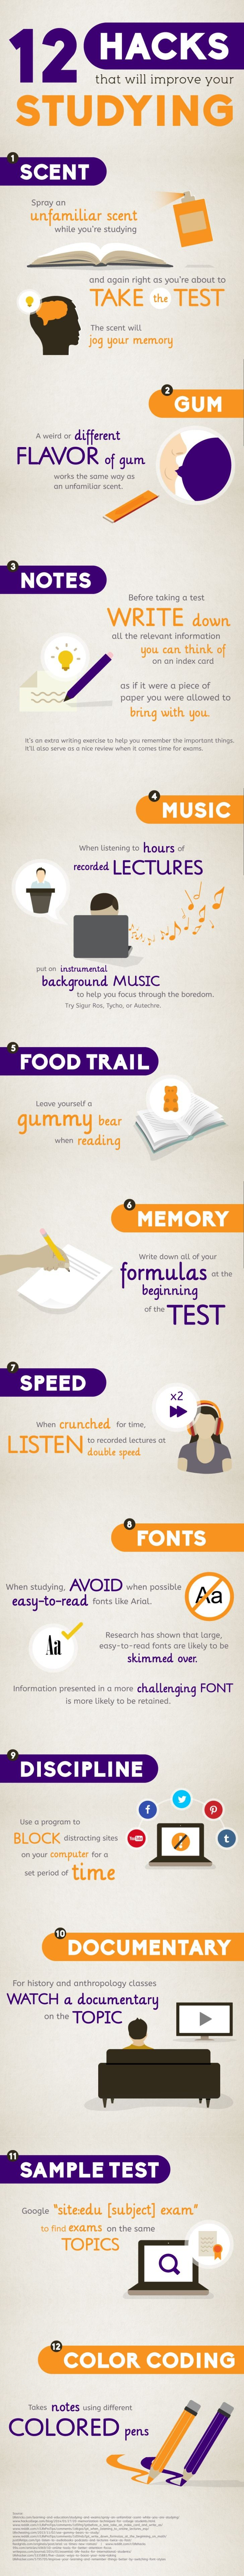 The 12 Hacks That Will Improve Your Studying Infographic present a fun list of hacks that can help you improve study habits and will help you study smarter.